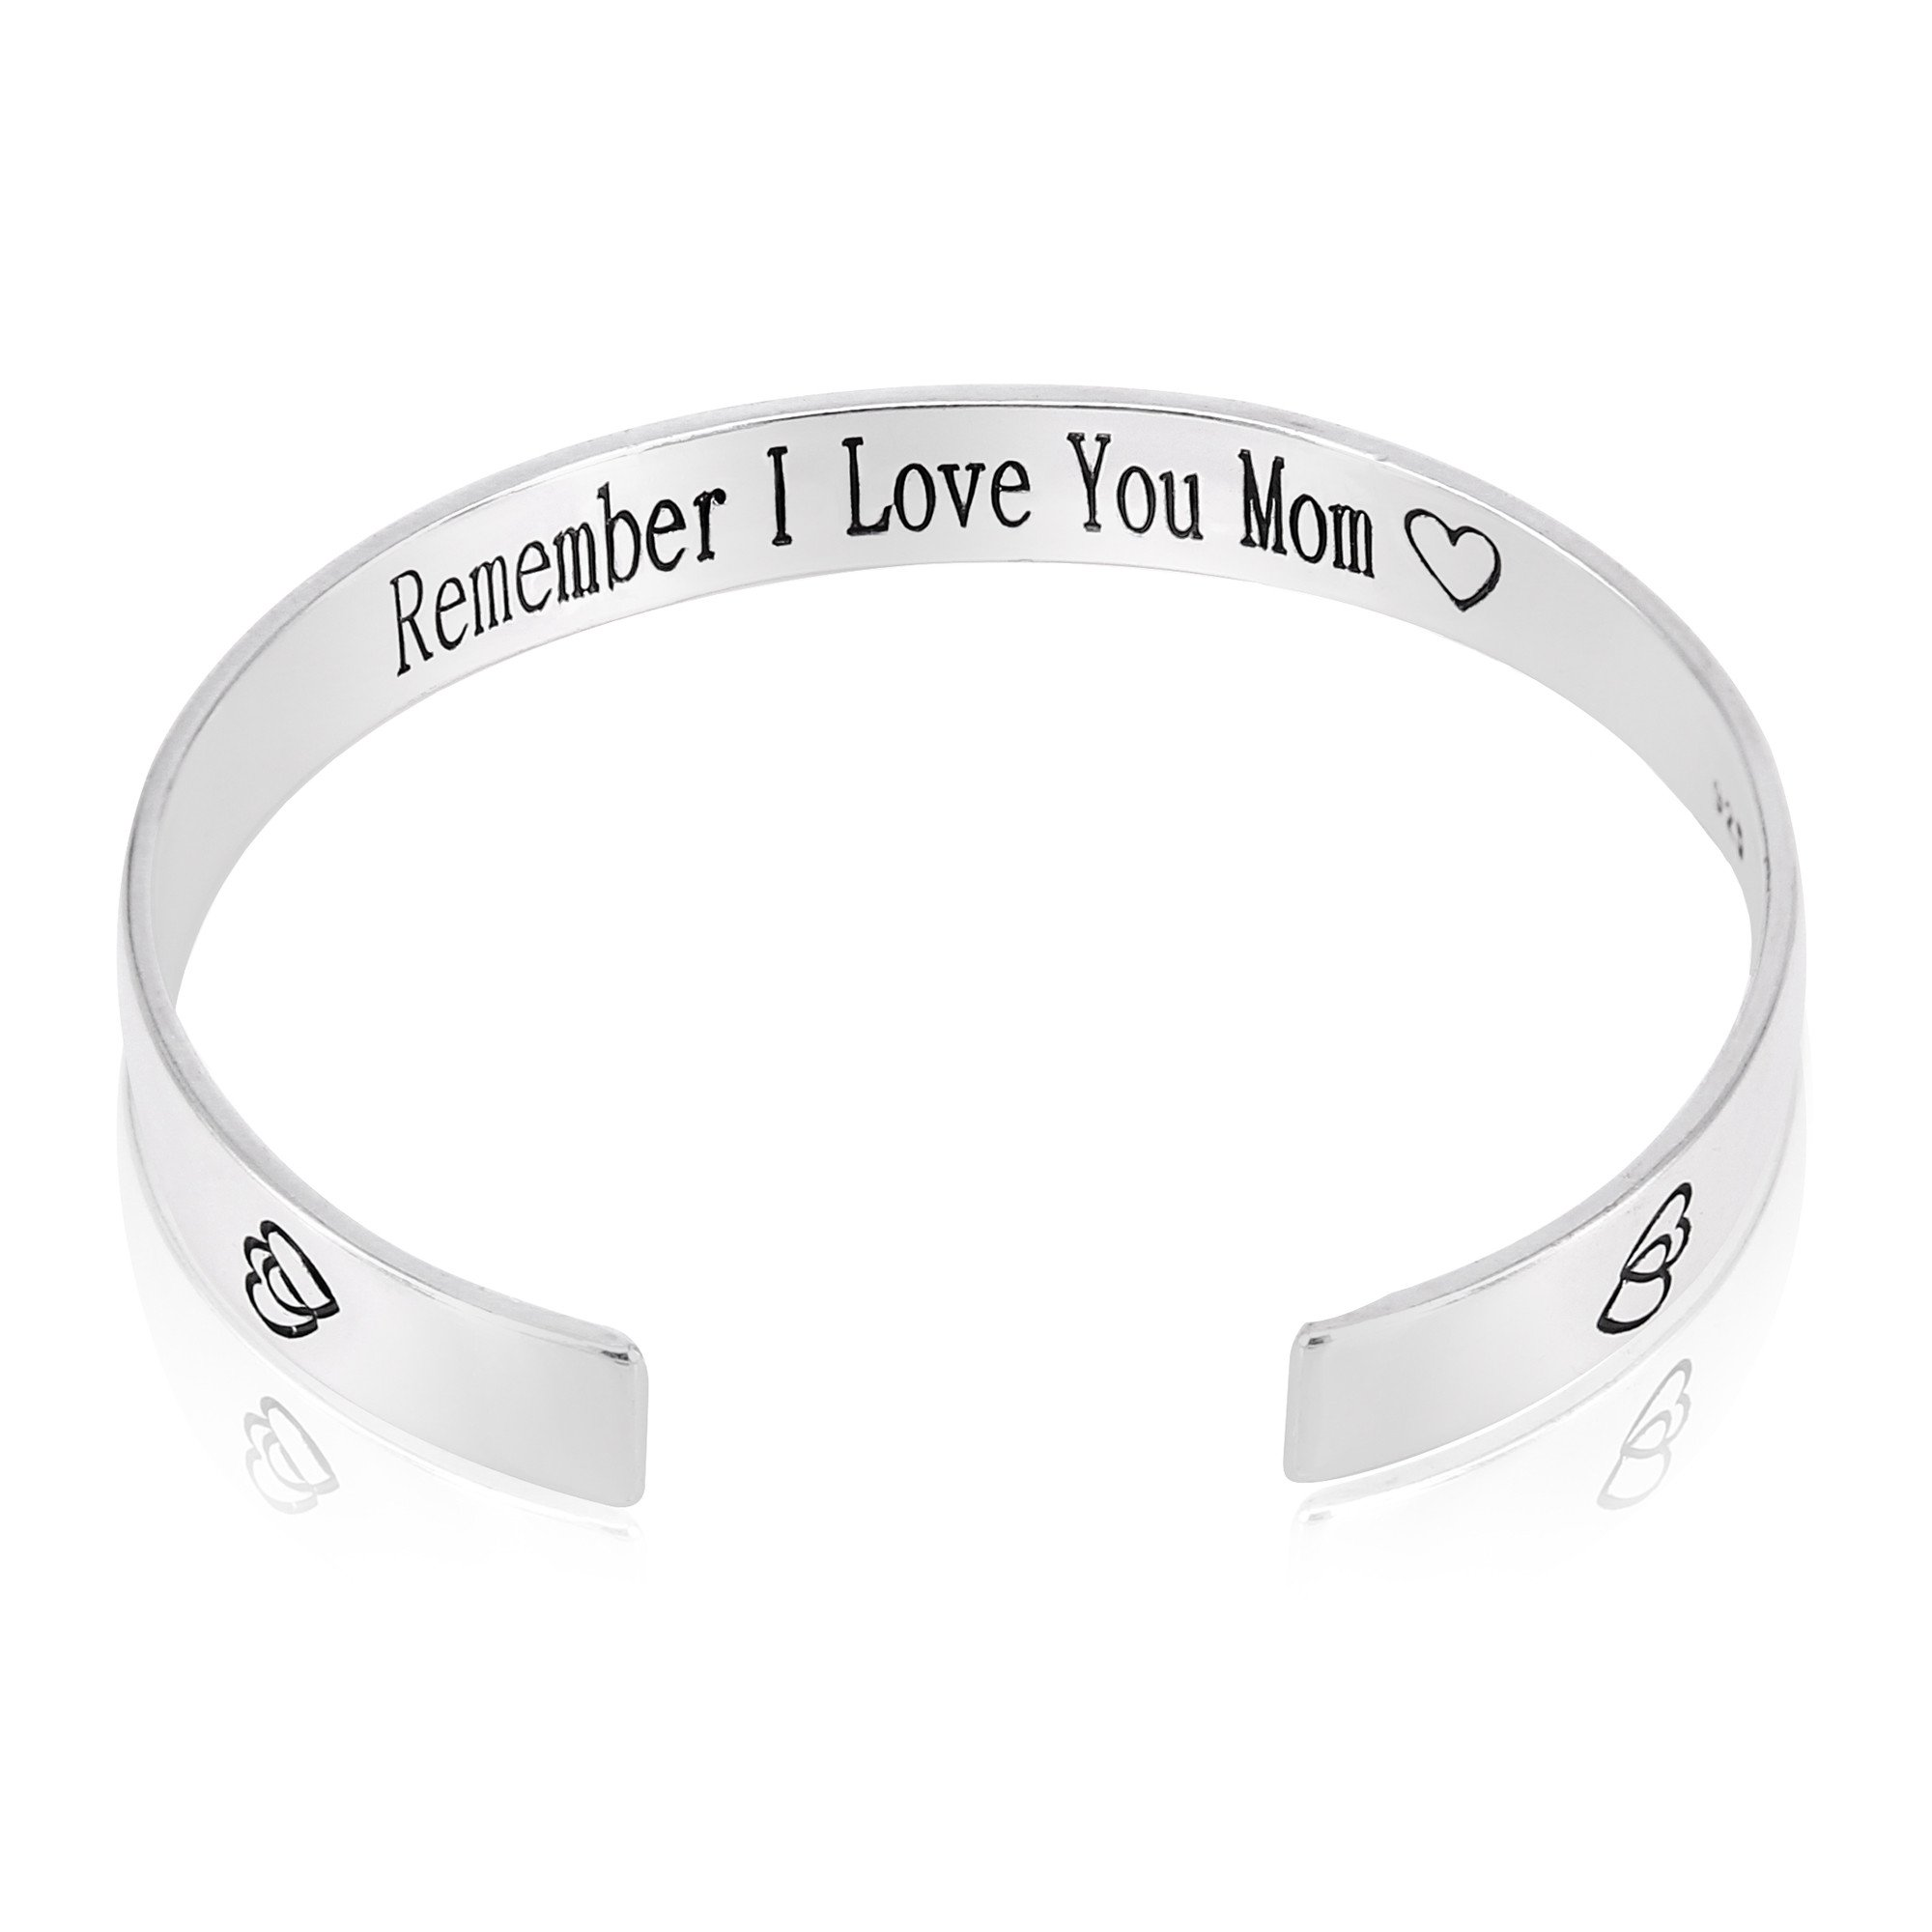 QTMY Remember I Love You Mom Forever and Always Cuff Bracelet Bangle Christmas Mother's Day Gift from Daughter (Titanium steel)